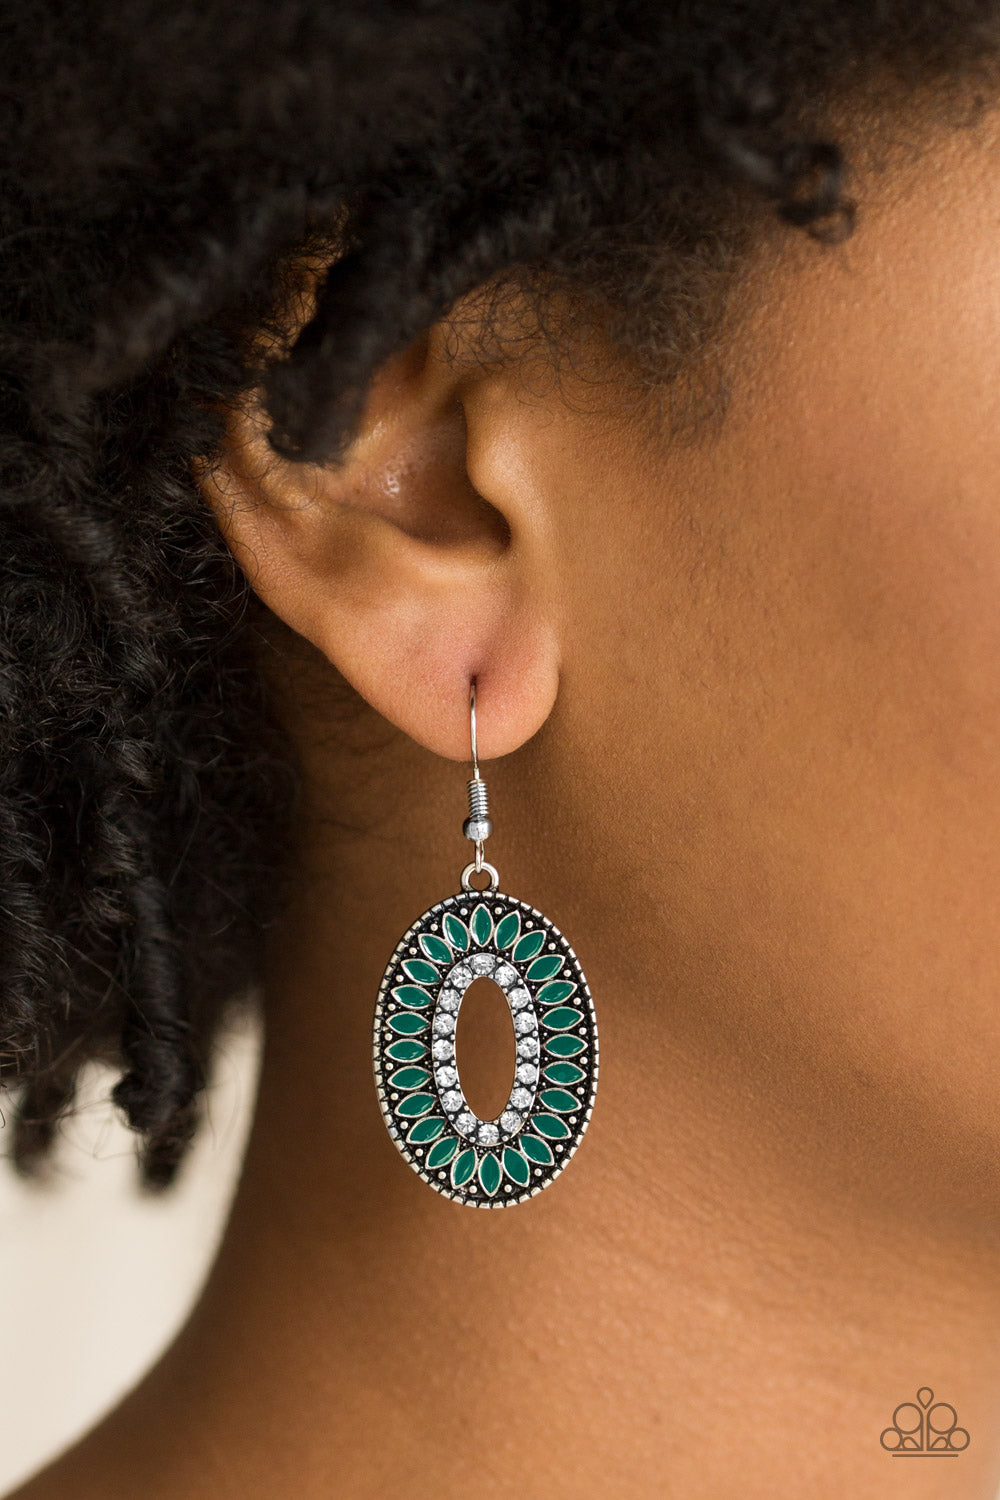 Refreshing green petals bloom from a glittery white rhinestone center, creating a fabulous frame. Earring attaches to a standard fishhook fitting.  Sold as one pair of earrings.  Always nickel and lead free.